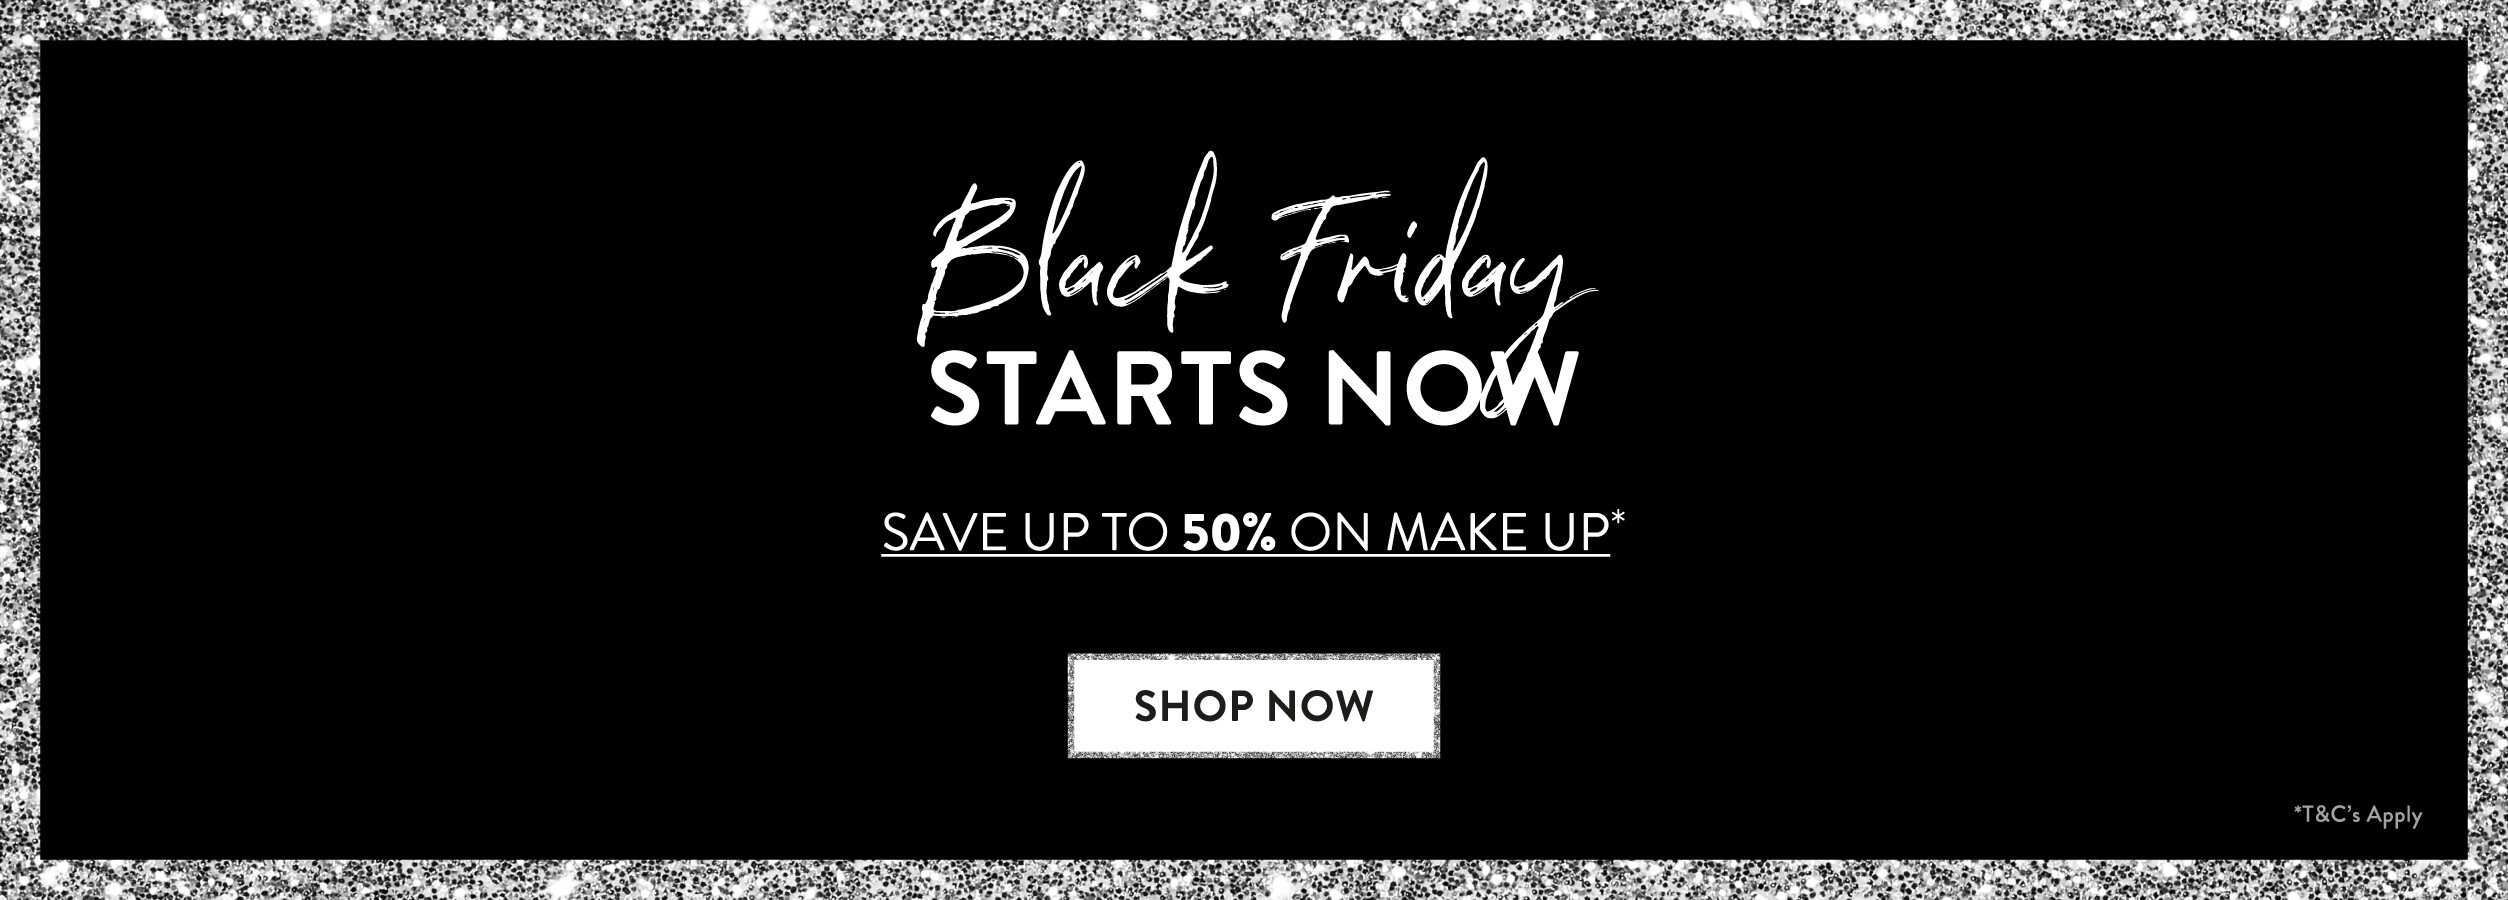 Black Friday starts here. Up to 50% off products